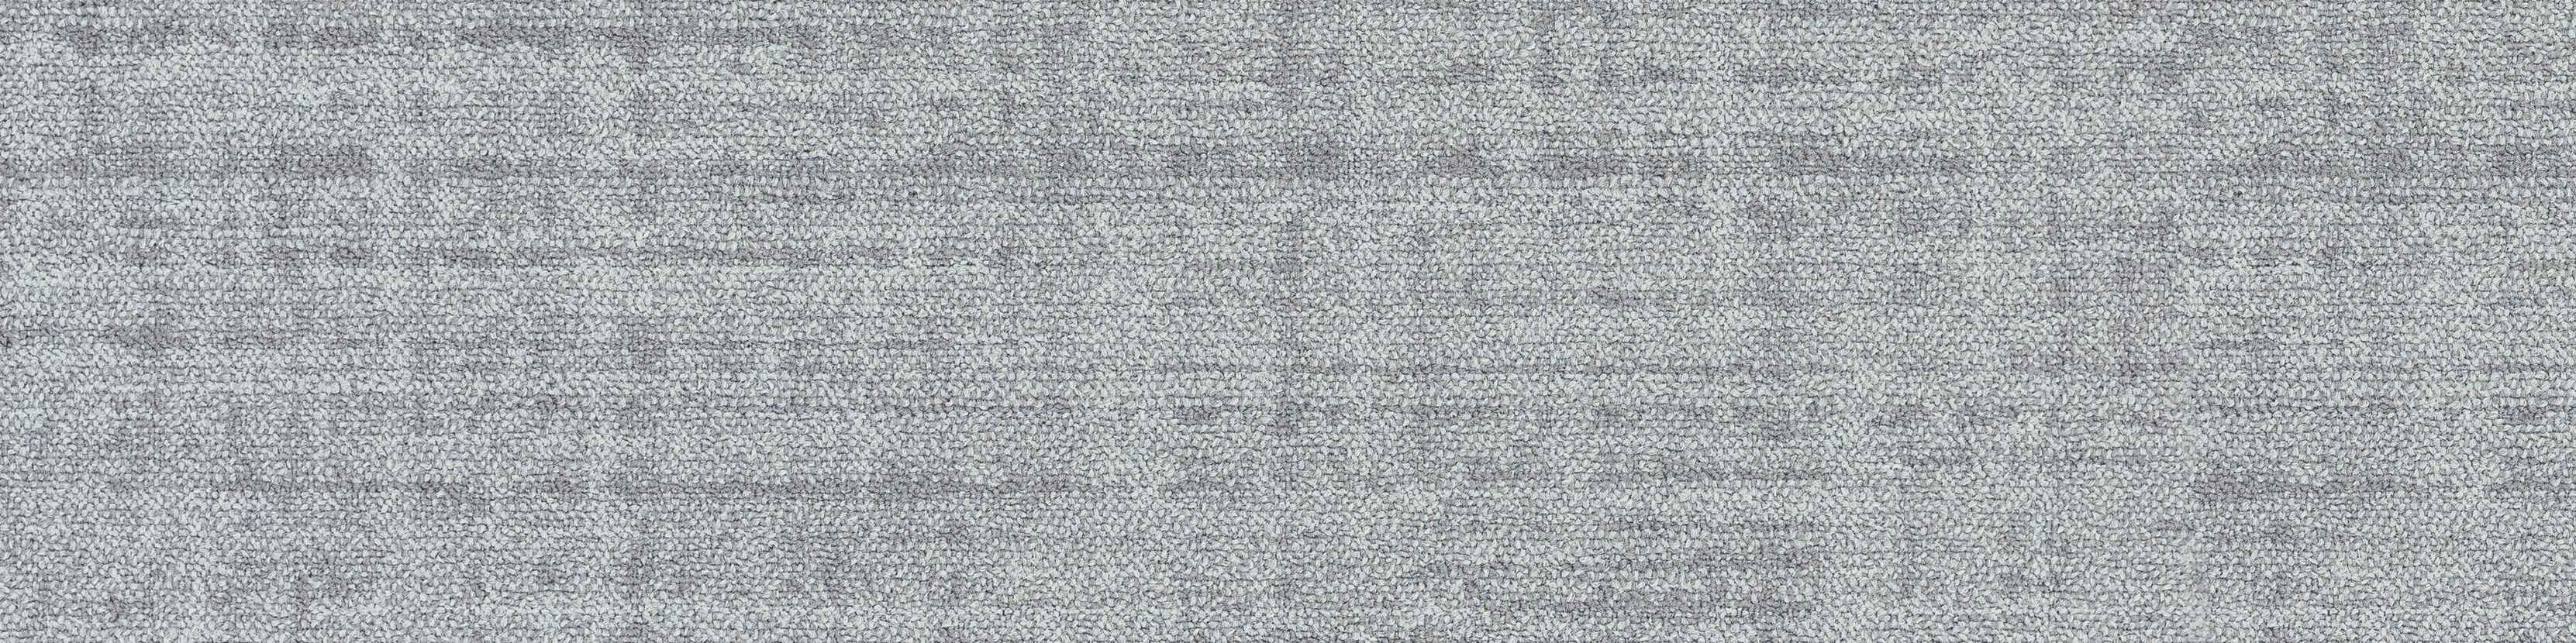 LIN01_SILVER Collection - Premierfloor Lino